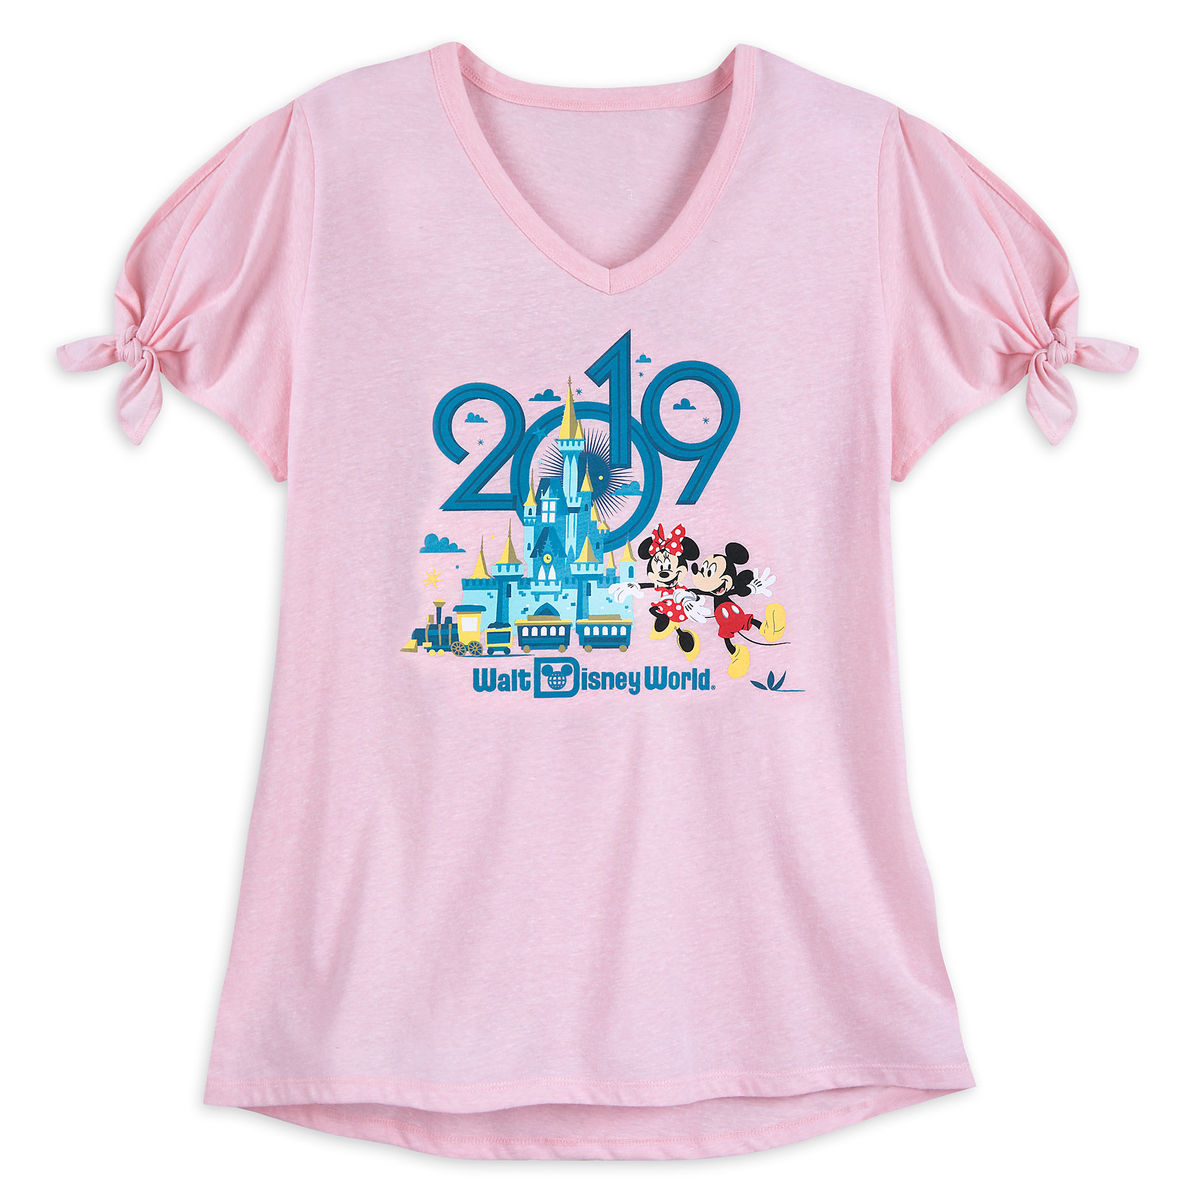 63e2f240a8d Product Image of Mickey and Minnie Mouse T-Shirt for Women - Walt Disney  World